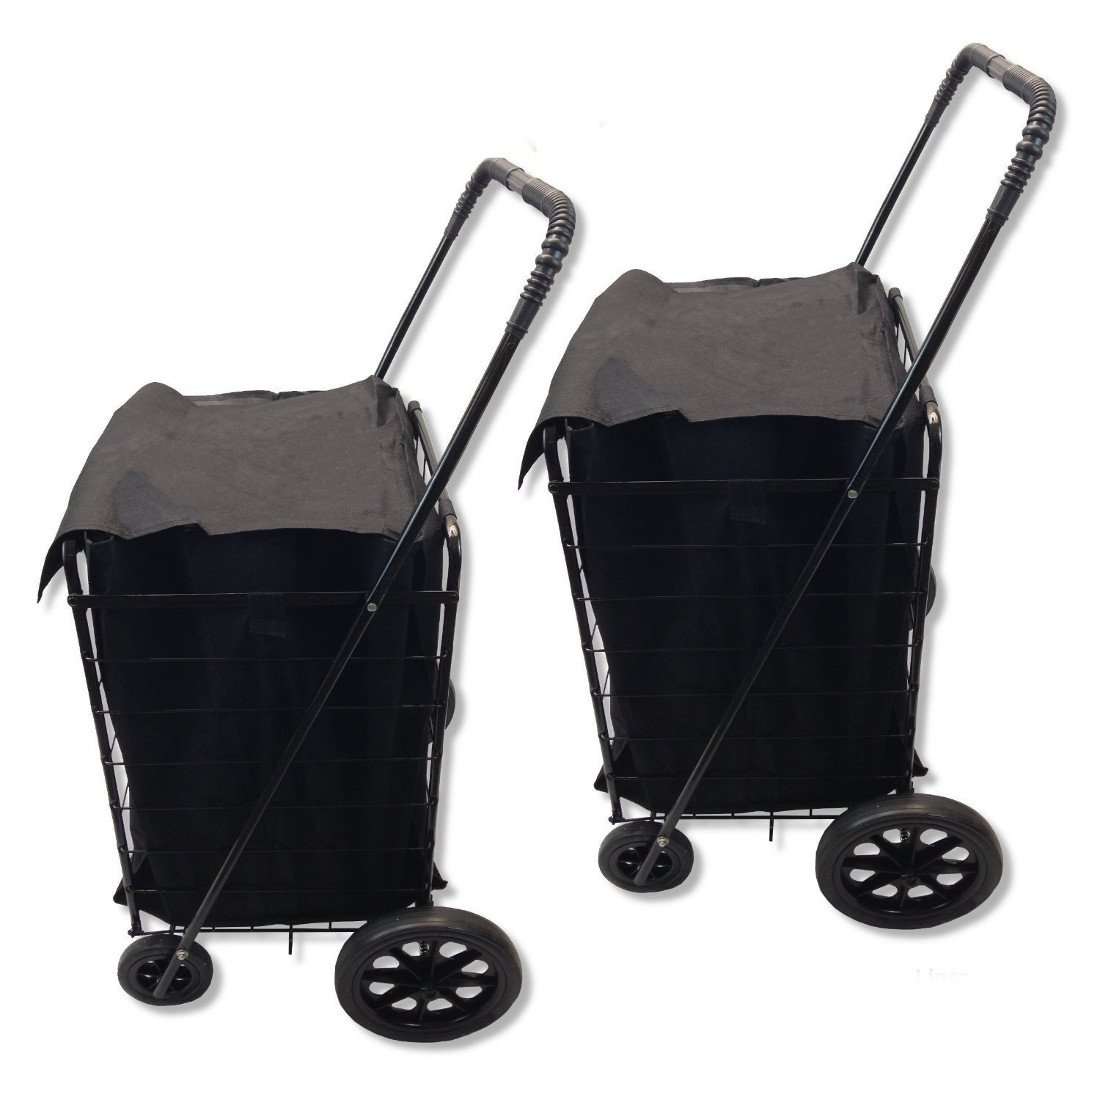 DLUX Set Of 2 Extra Large Heavy-Duty Black Folding Utility Cart Folds Up Rolling Storage Shopping Carrier from DLUX (BLACK) with BONUS LINER